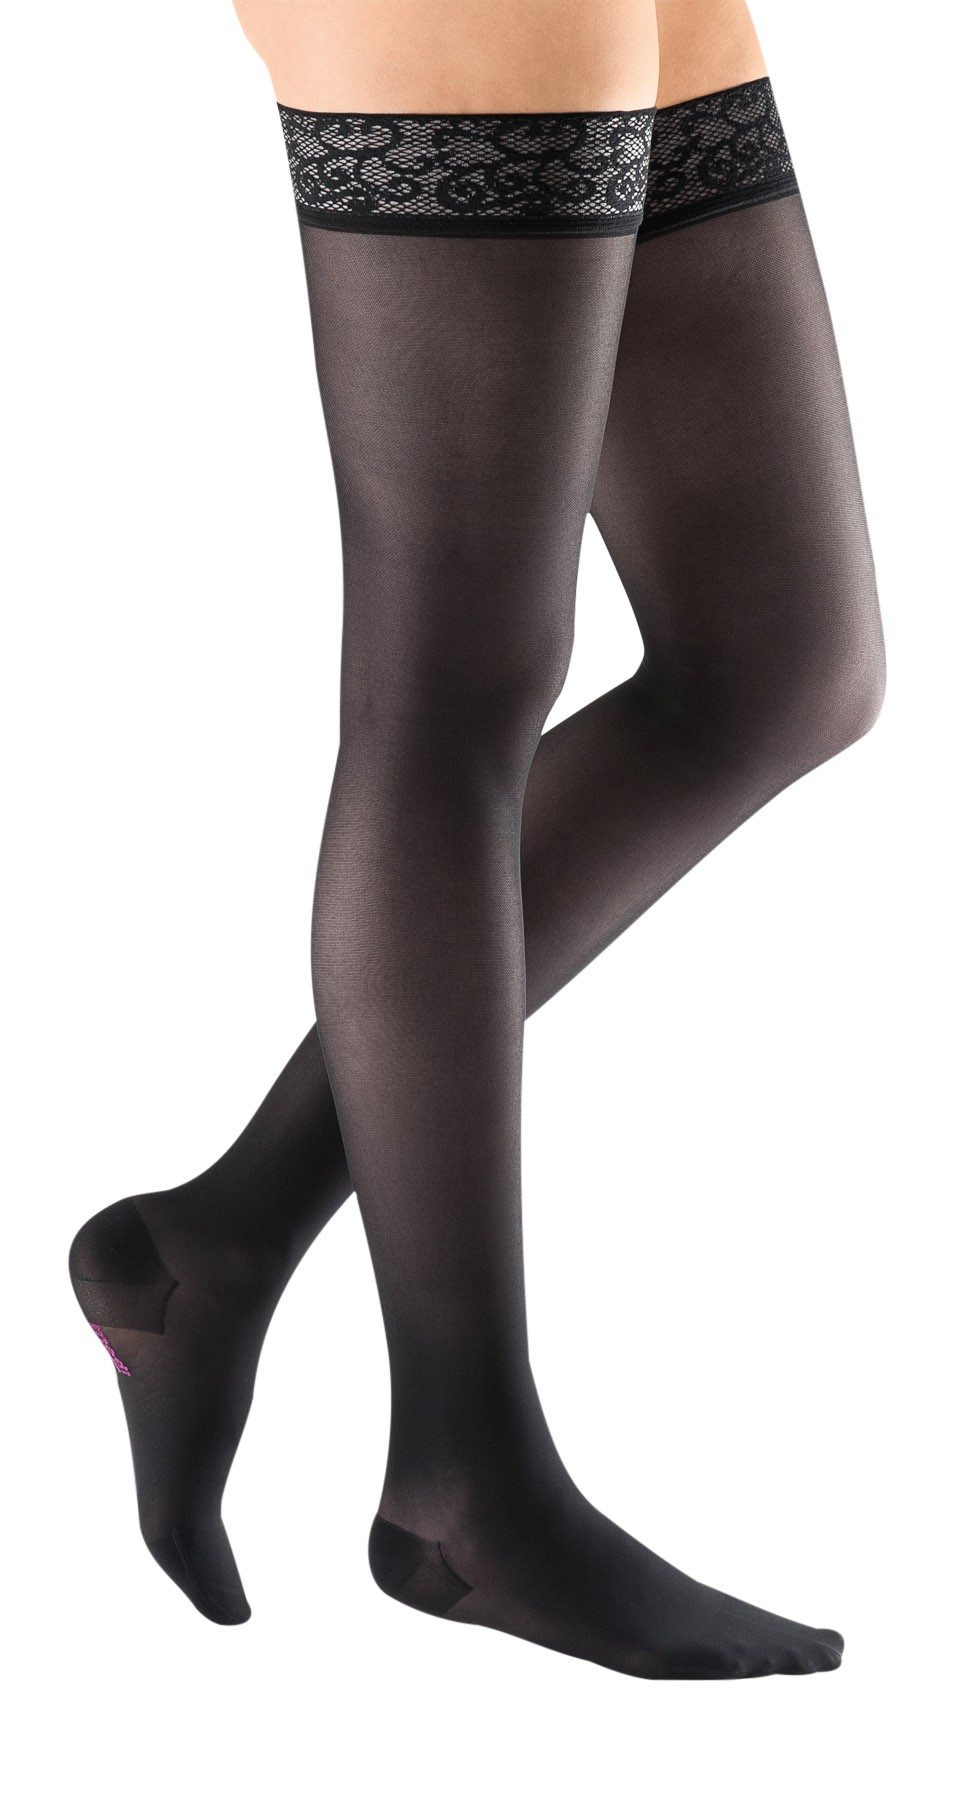 accad50ecd4 mediven-sheer-soft-womens-thigh-highs-8-15-mmhg-411-ebony 2.jpg